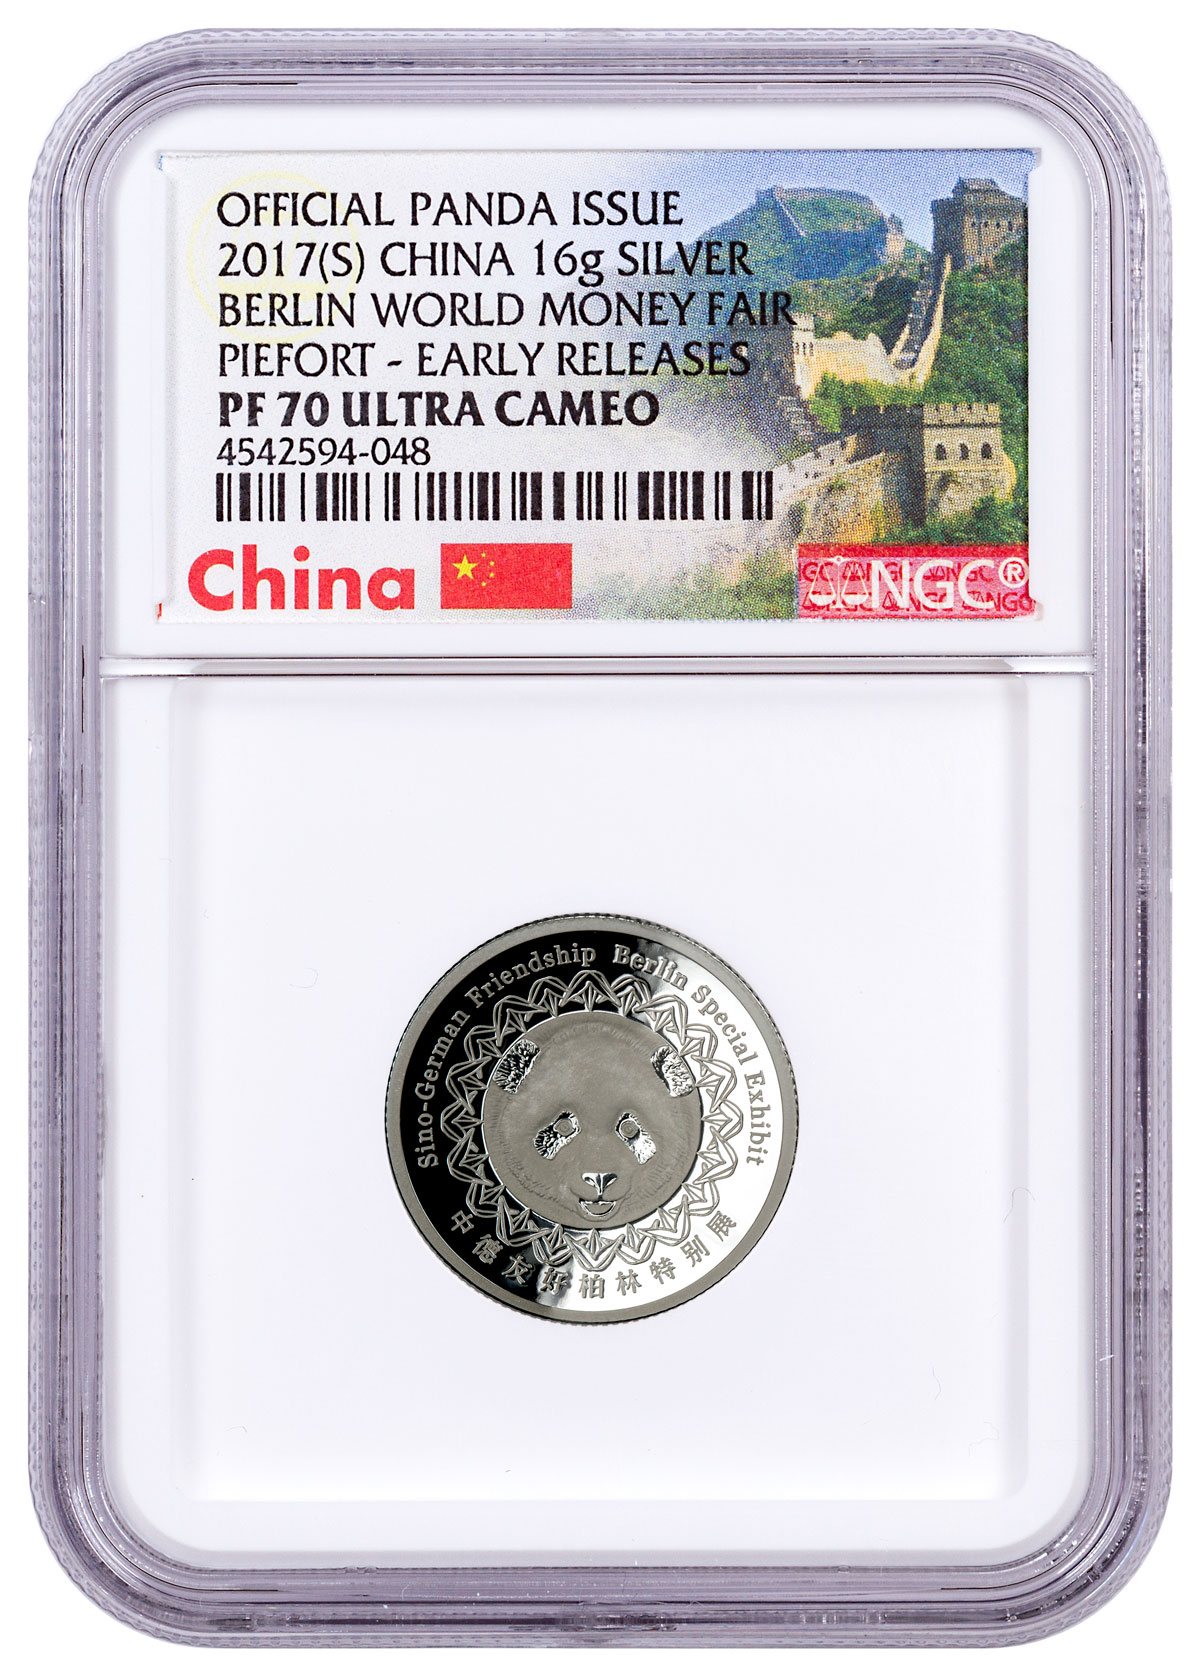 2017-(S) China Berlin World Money Fair 16 g Silver Show Panda Piedfort Proof Medal NGC PF70 UC ER Exclusive China Label